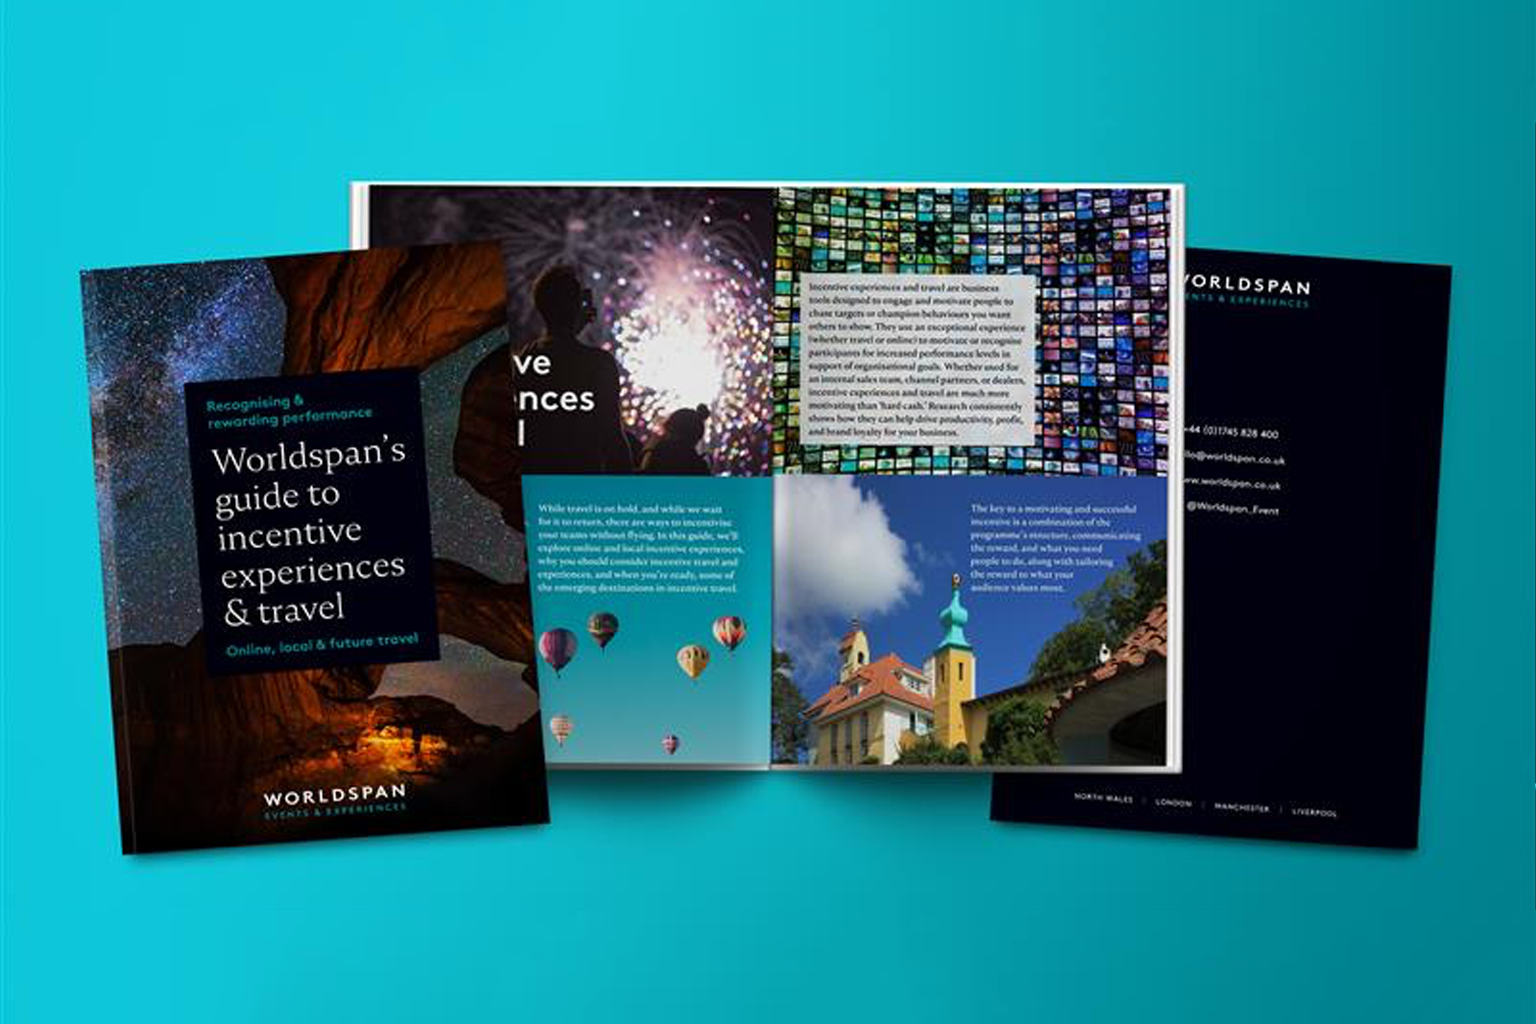 Worldspan's Guide to Incentive Experiences & Travel - online, locally and for when travel returns